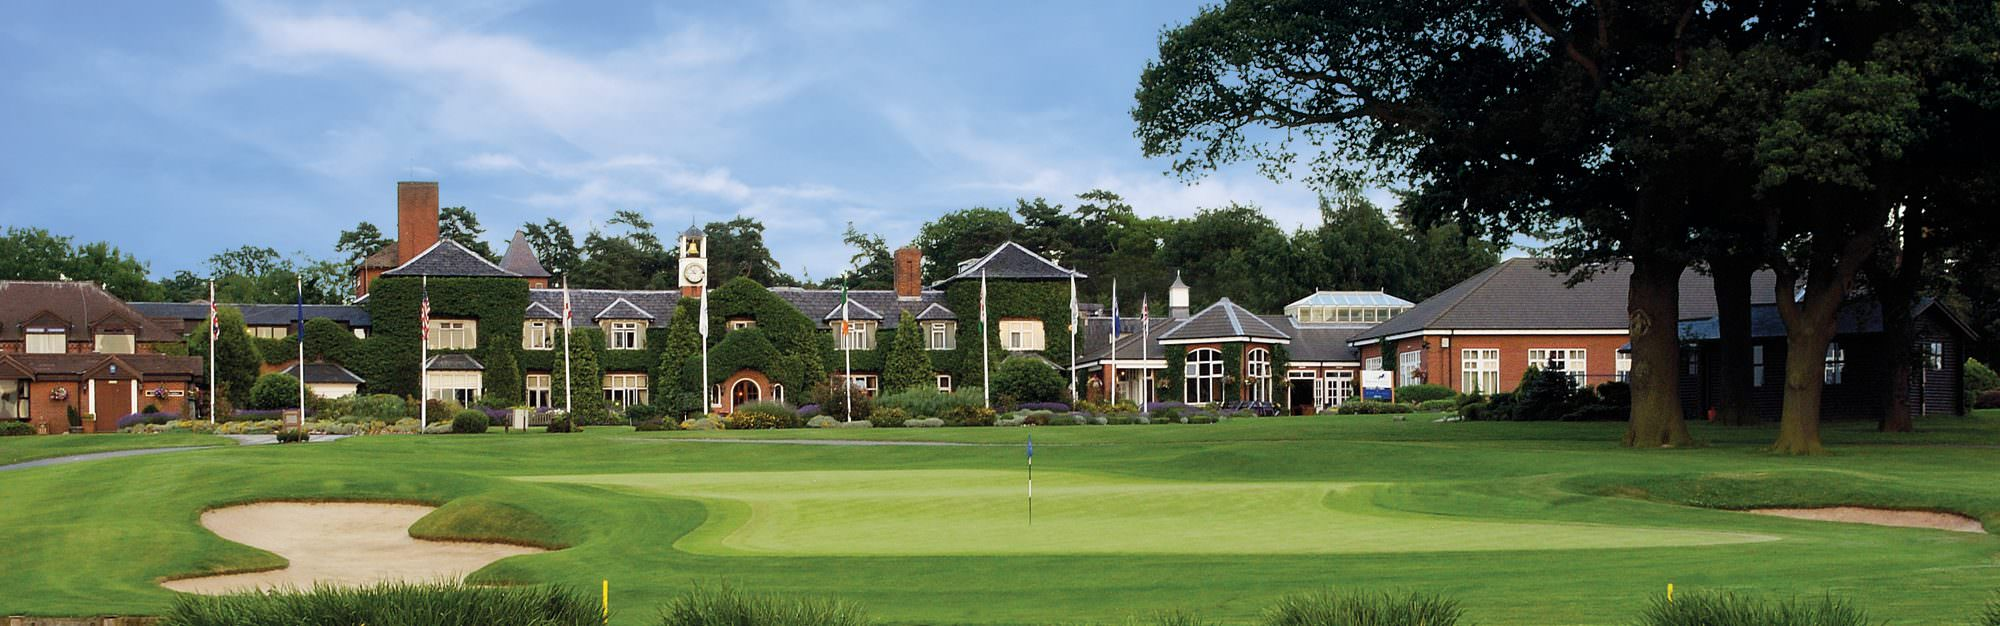 Best Value UK Golf Breaks with Golf Holidays Direct